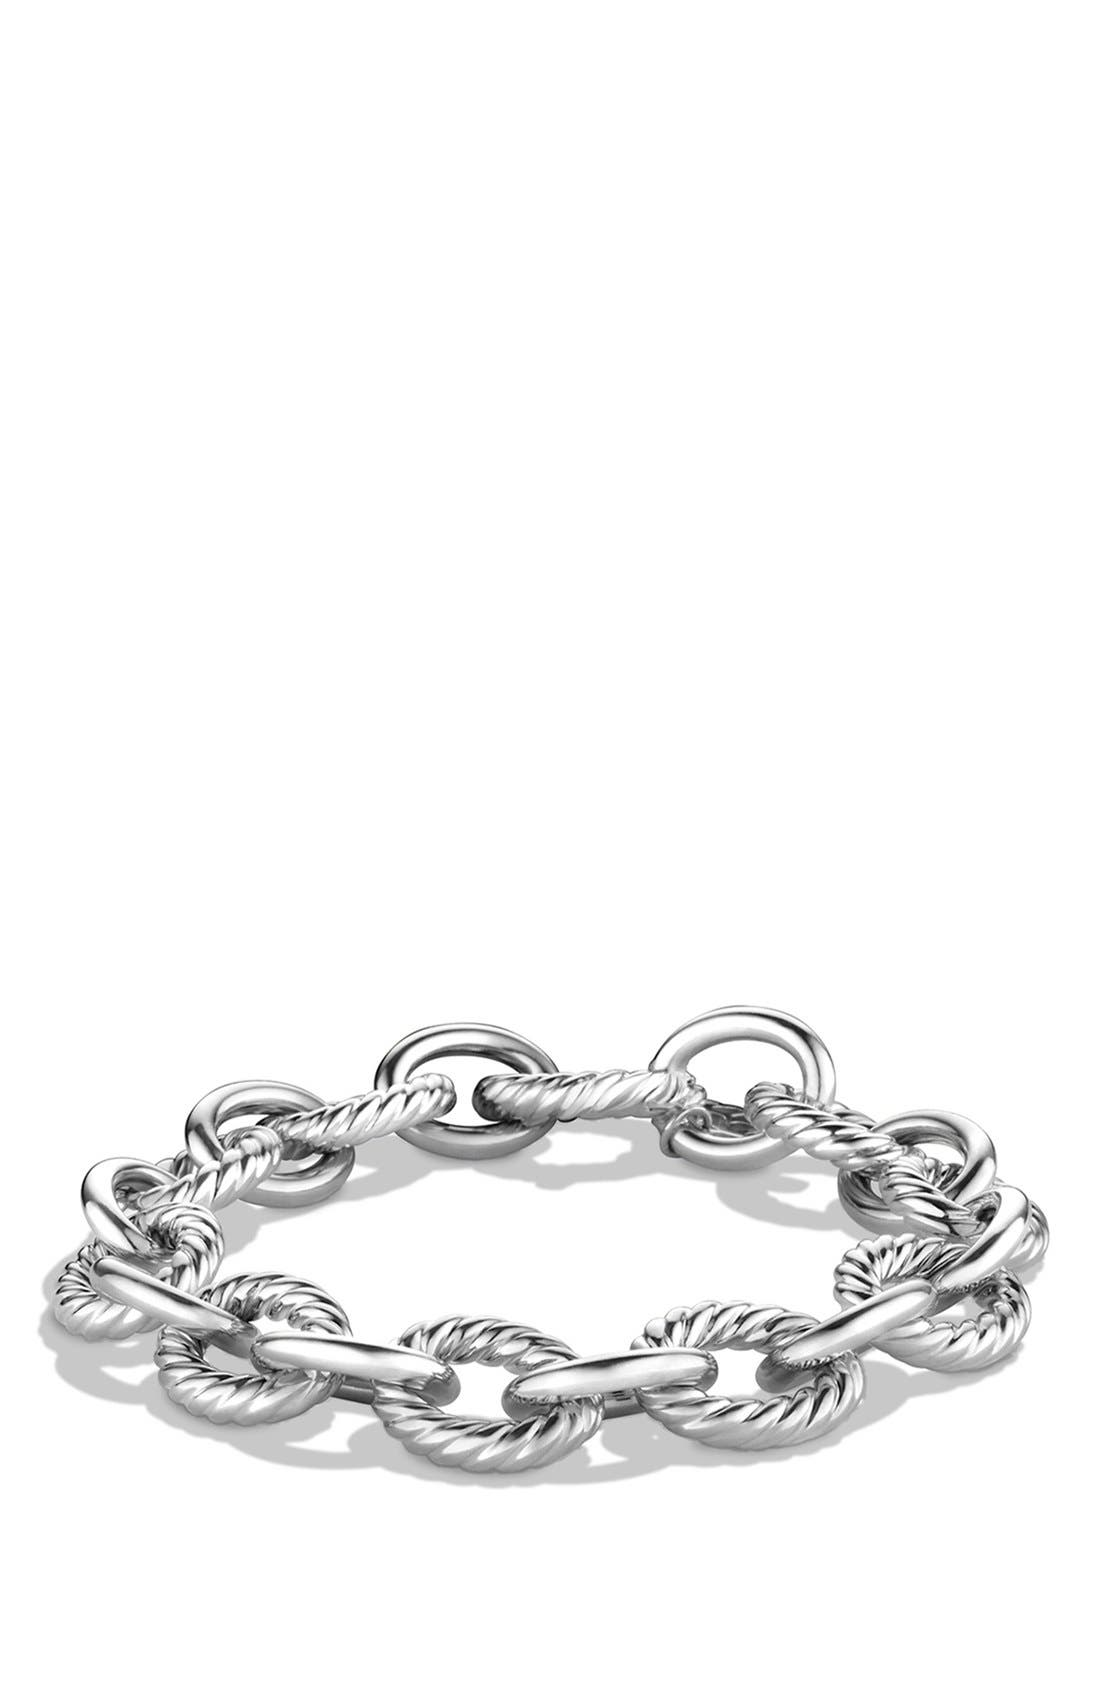 Main Image - David Yurman 'Oval' Large Link Bracelet